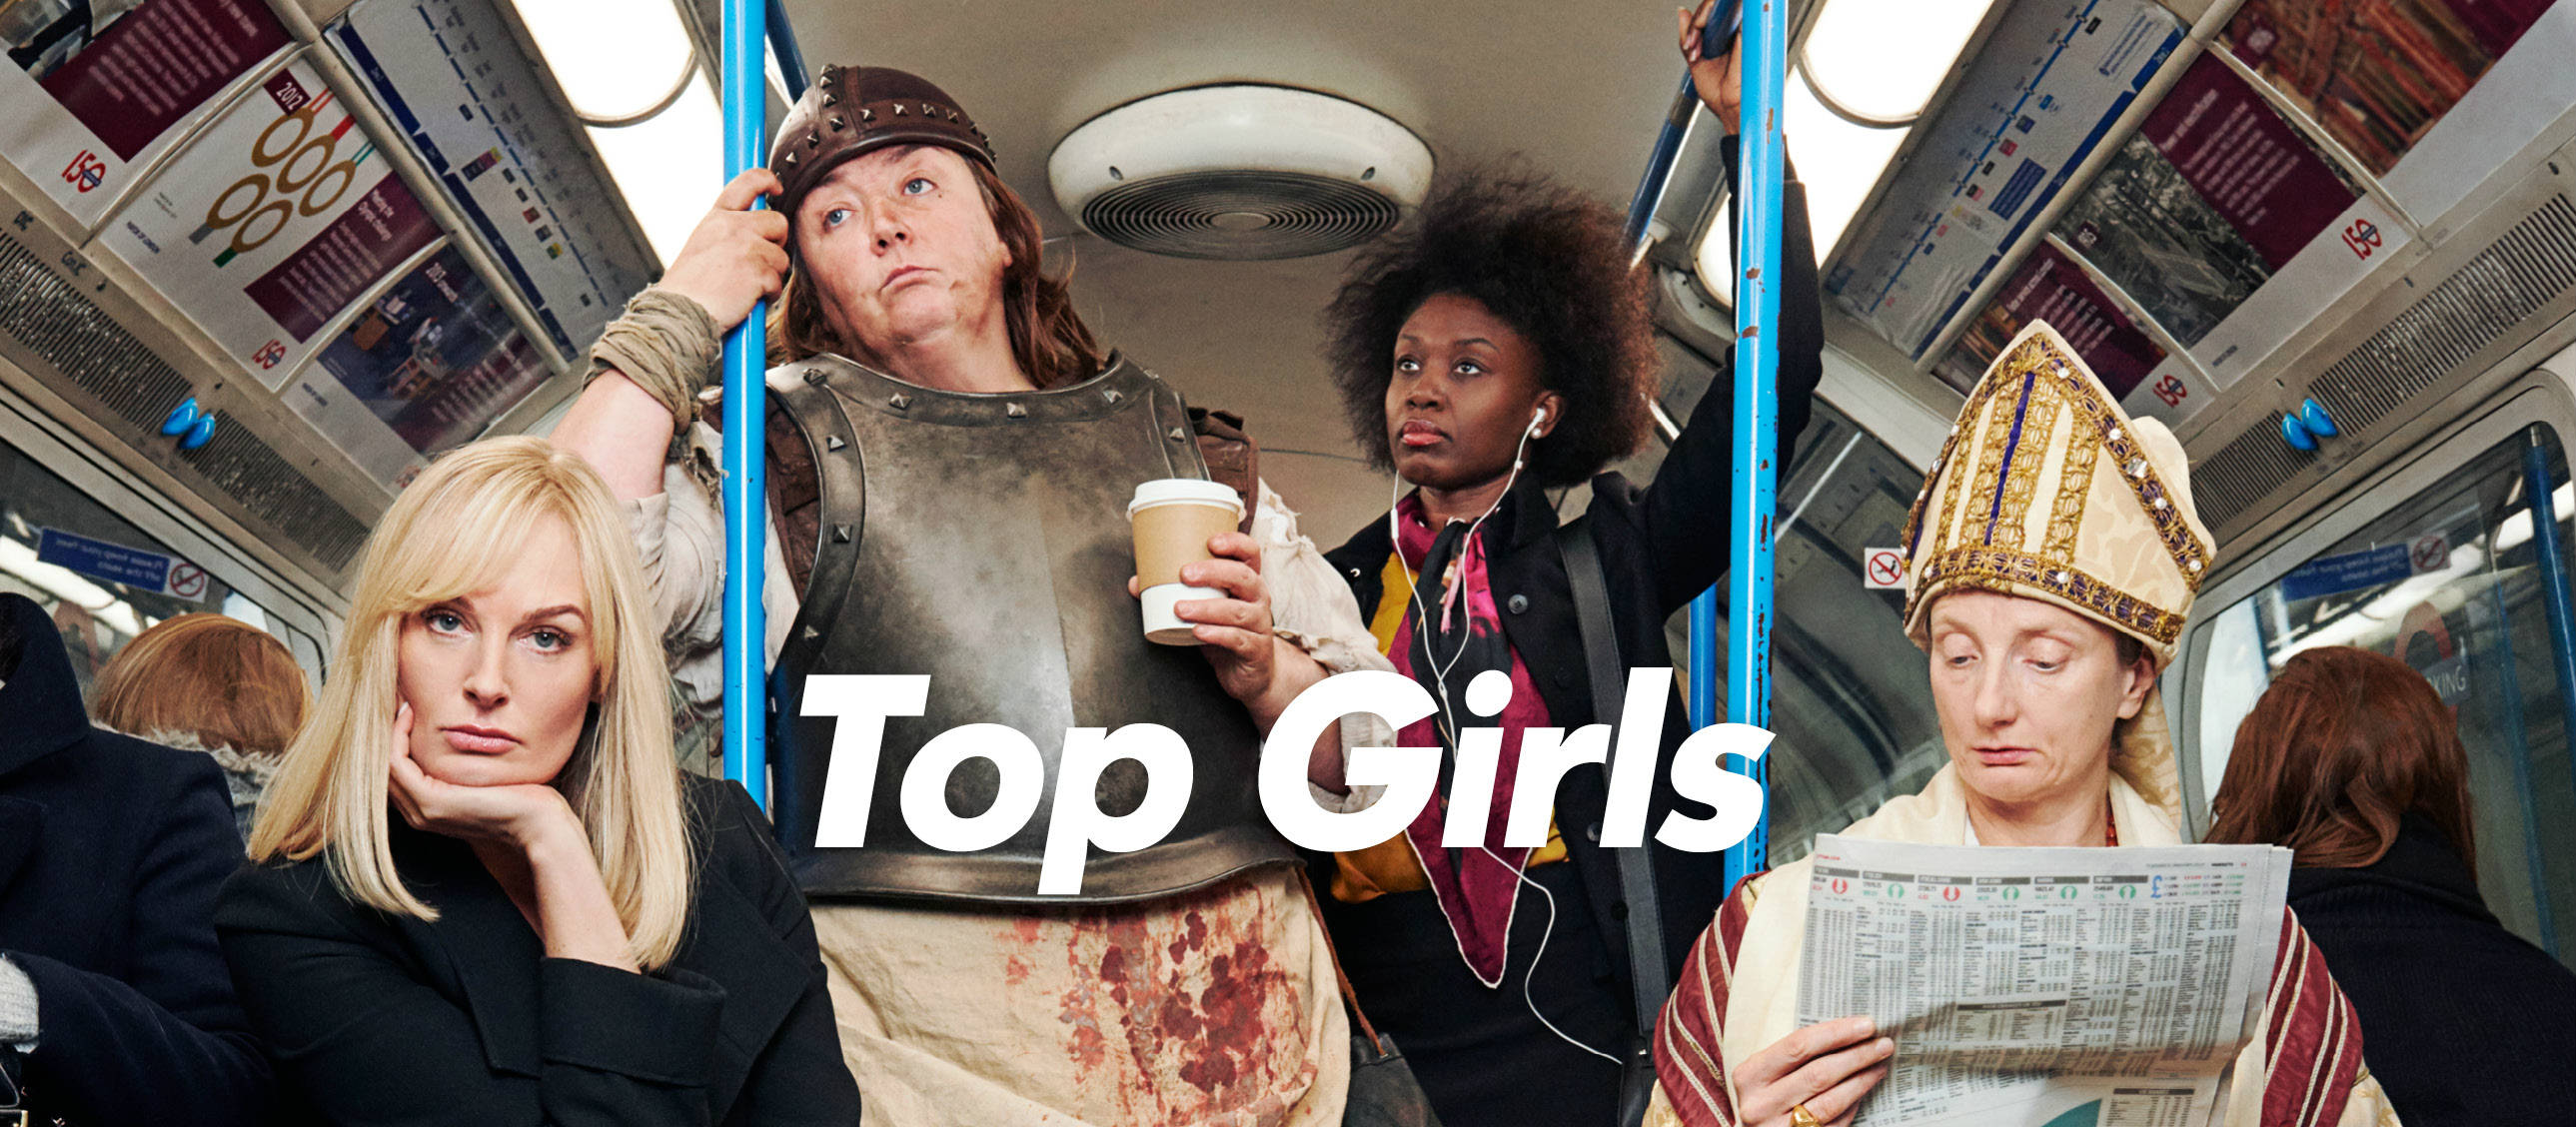 Top Girls poster image with photo of Katherine Kingsley, Ashley McGuire, Nadia Williams, Amanda Lawrence in an underground railway carriage